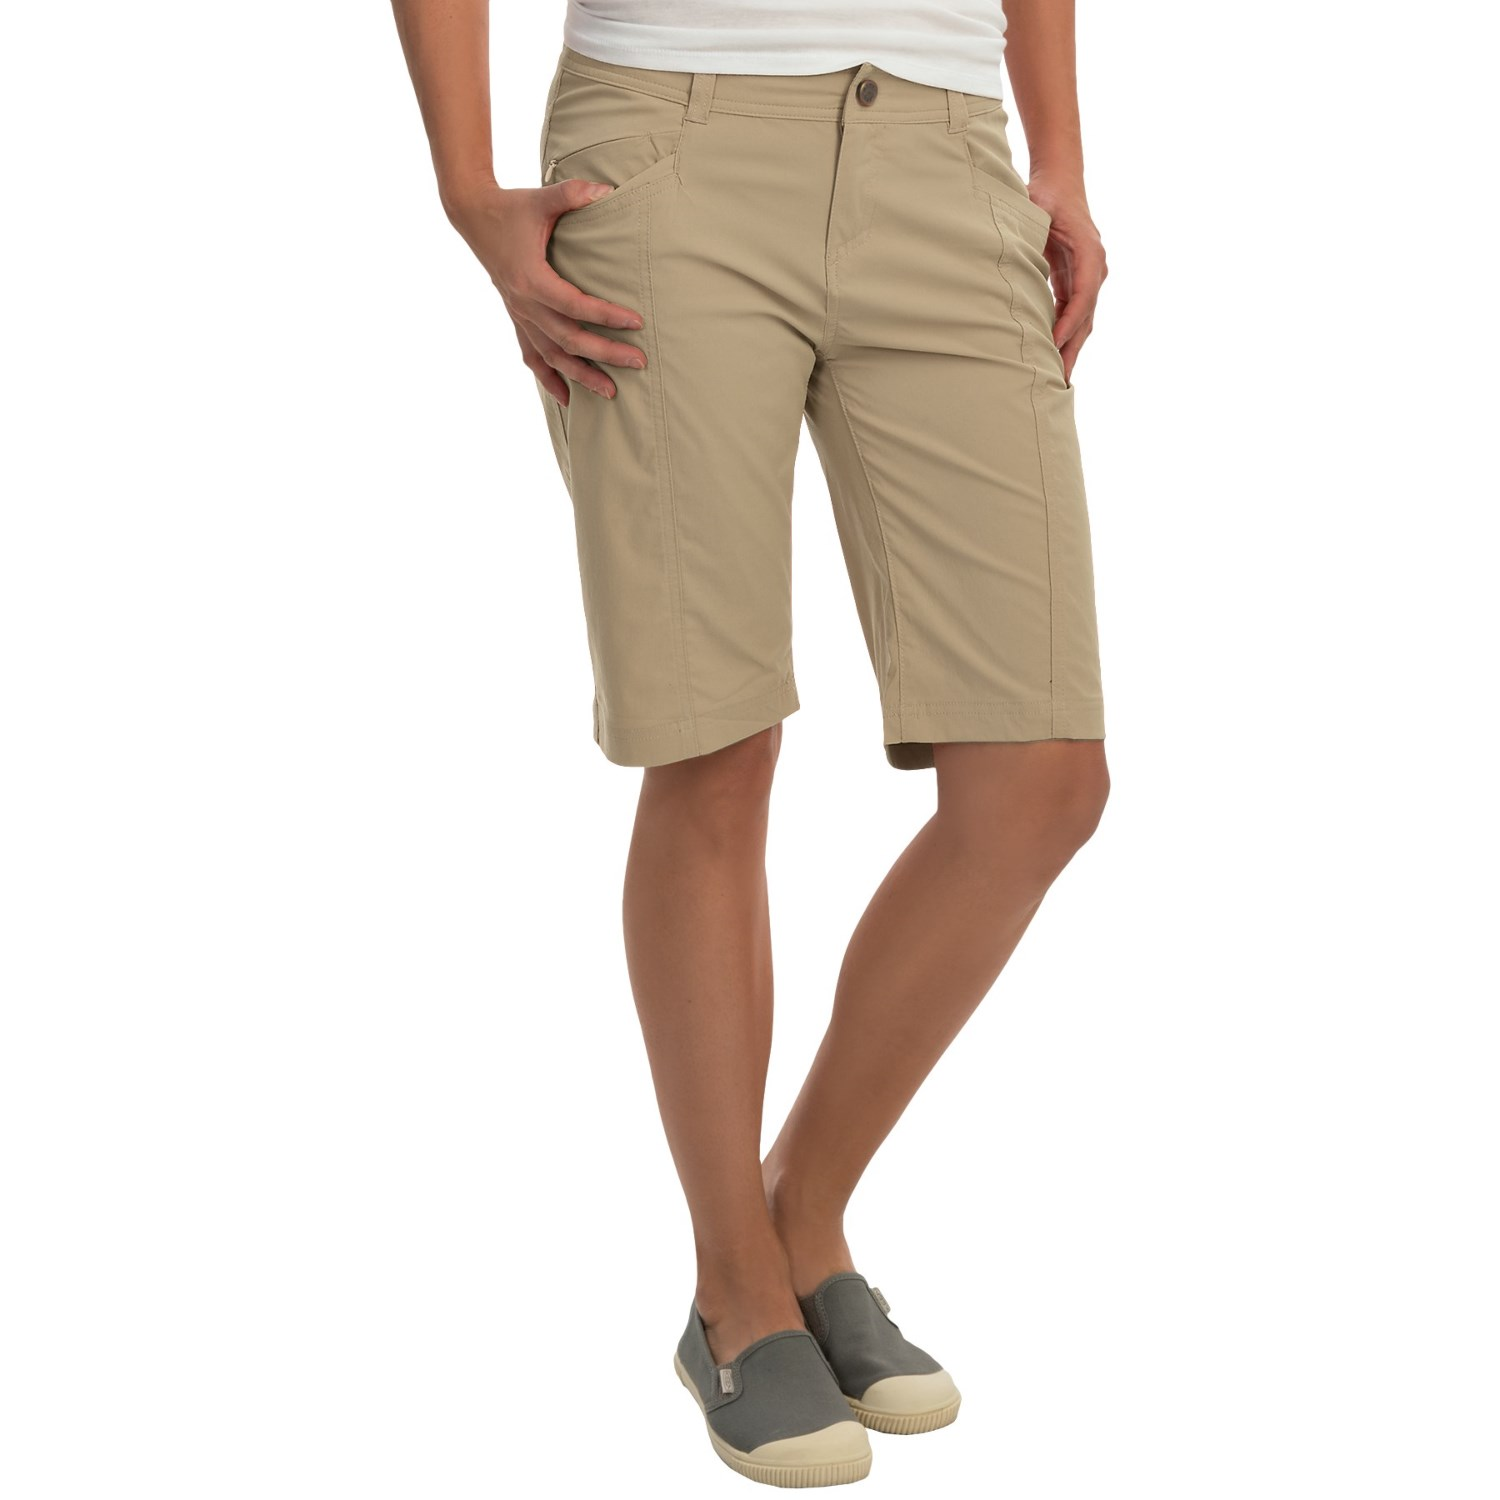 Royal Robbins Discovery Bermuda Shorts (For Women) - Save 58%